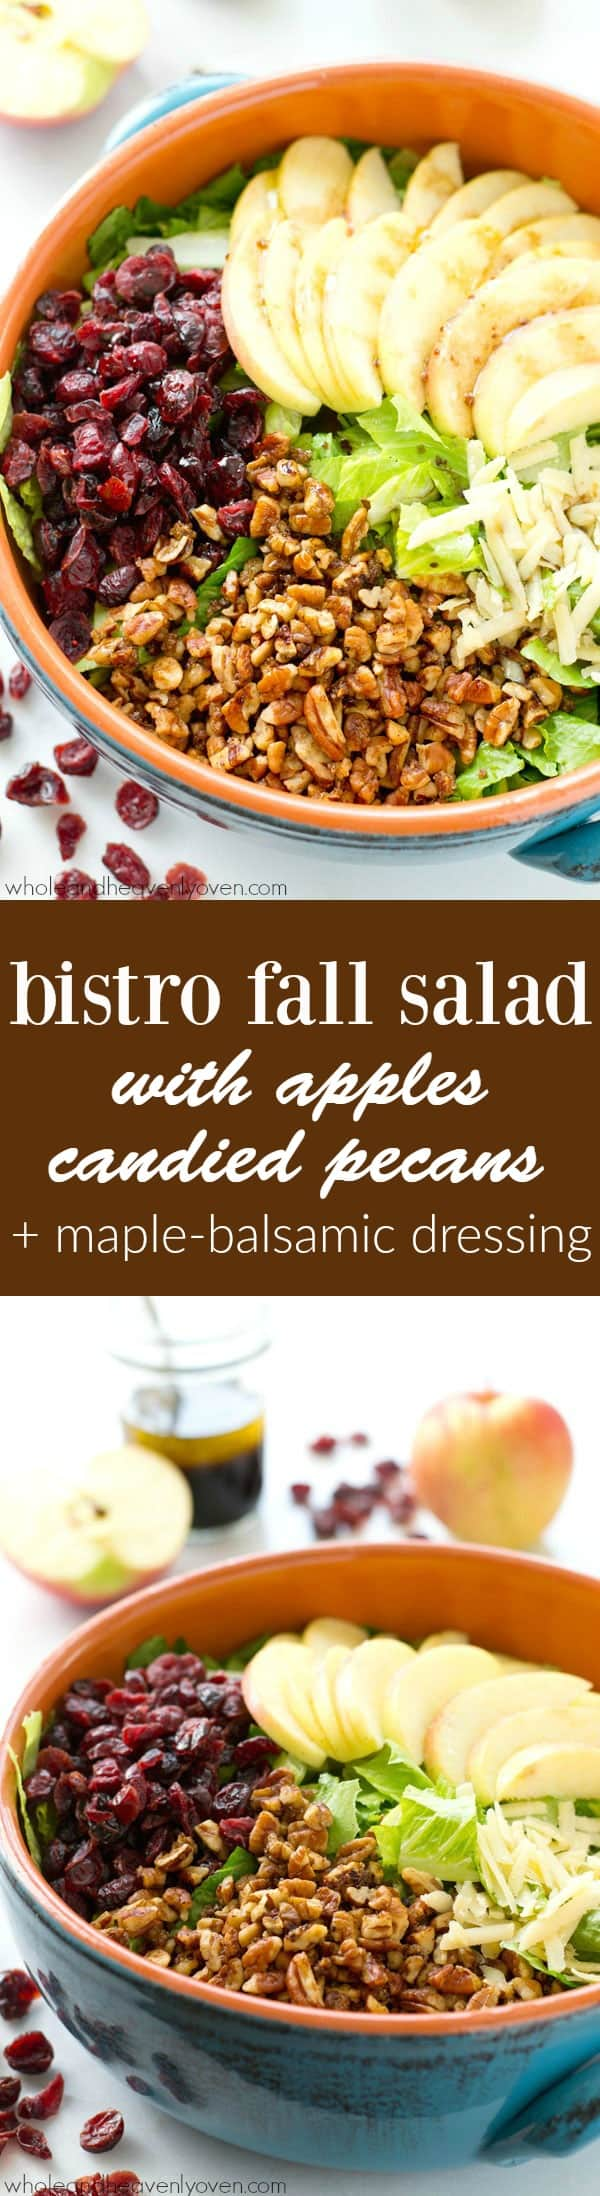 Loaded with crisp apples, homemade candied pecans, a tangy maple balsamic dressing, and tons of other fall goodness, this bistro fall salad is the ultimate way to celebrate the season! @WholeHeavenly